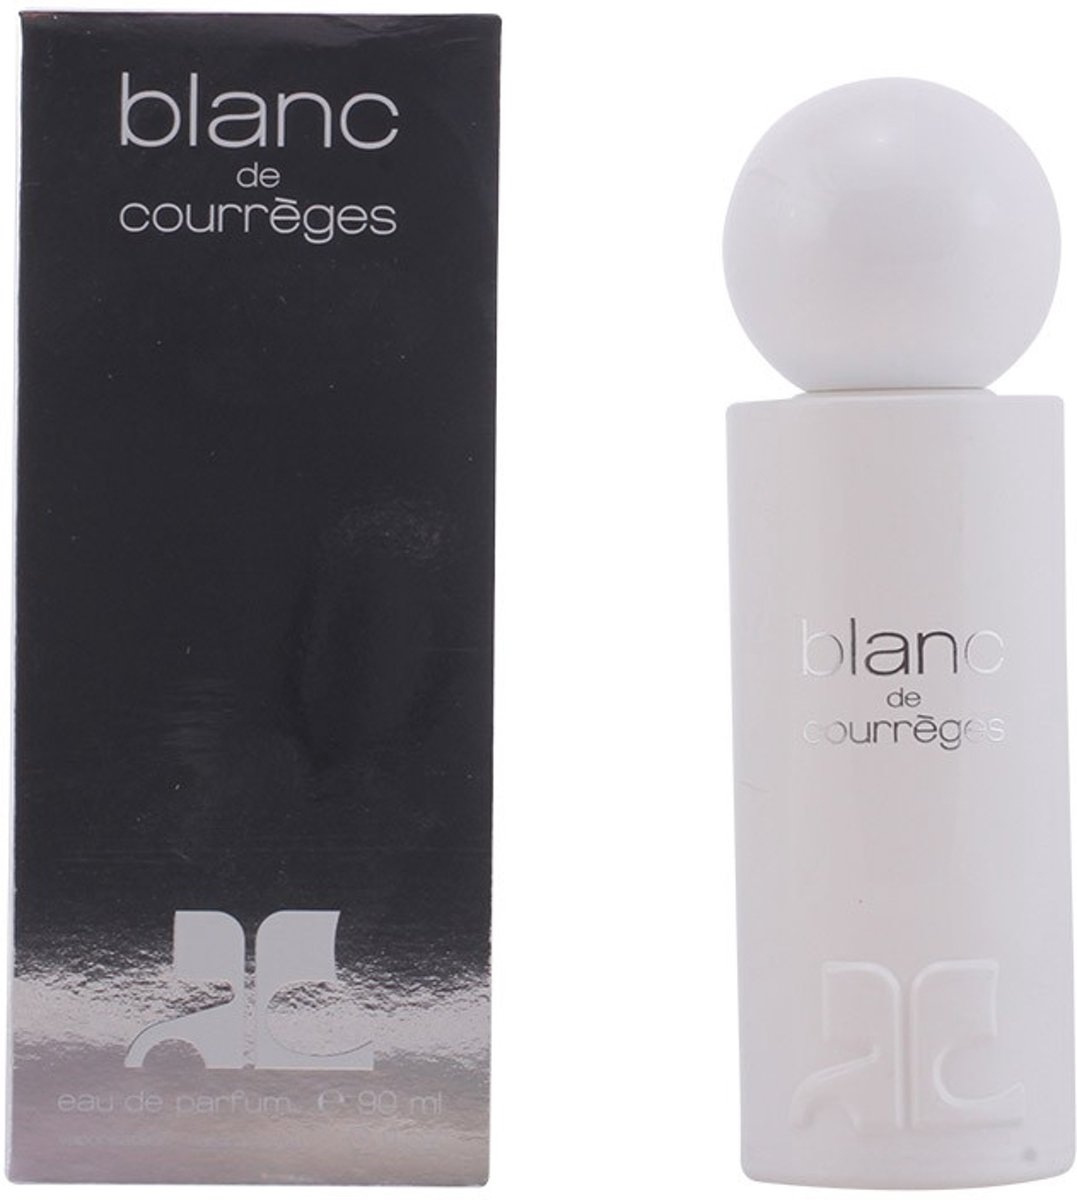 Courreges Blanc De 90 ml - Eau De Parfum Spray Damesparfum